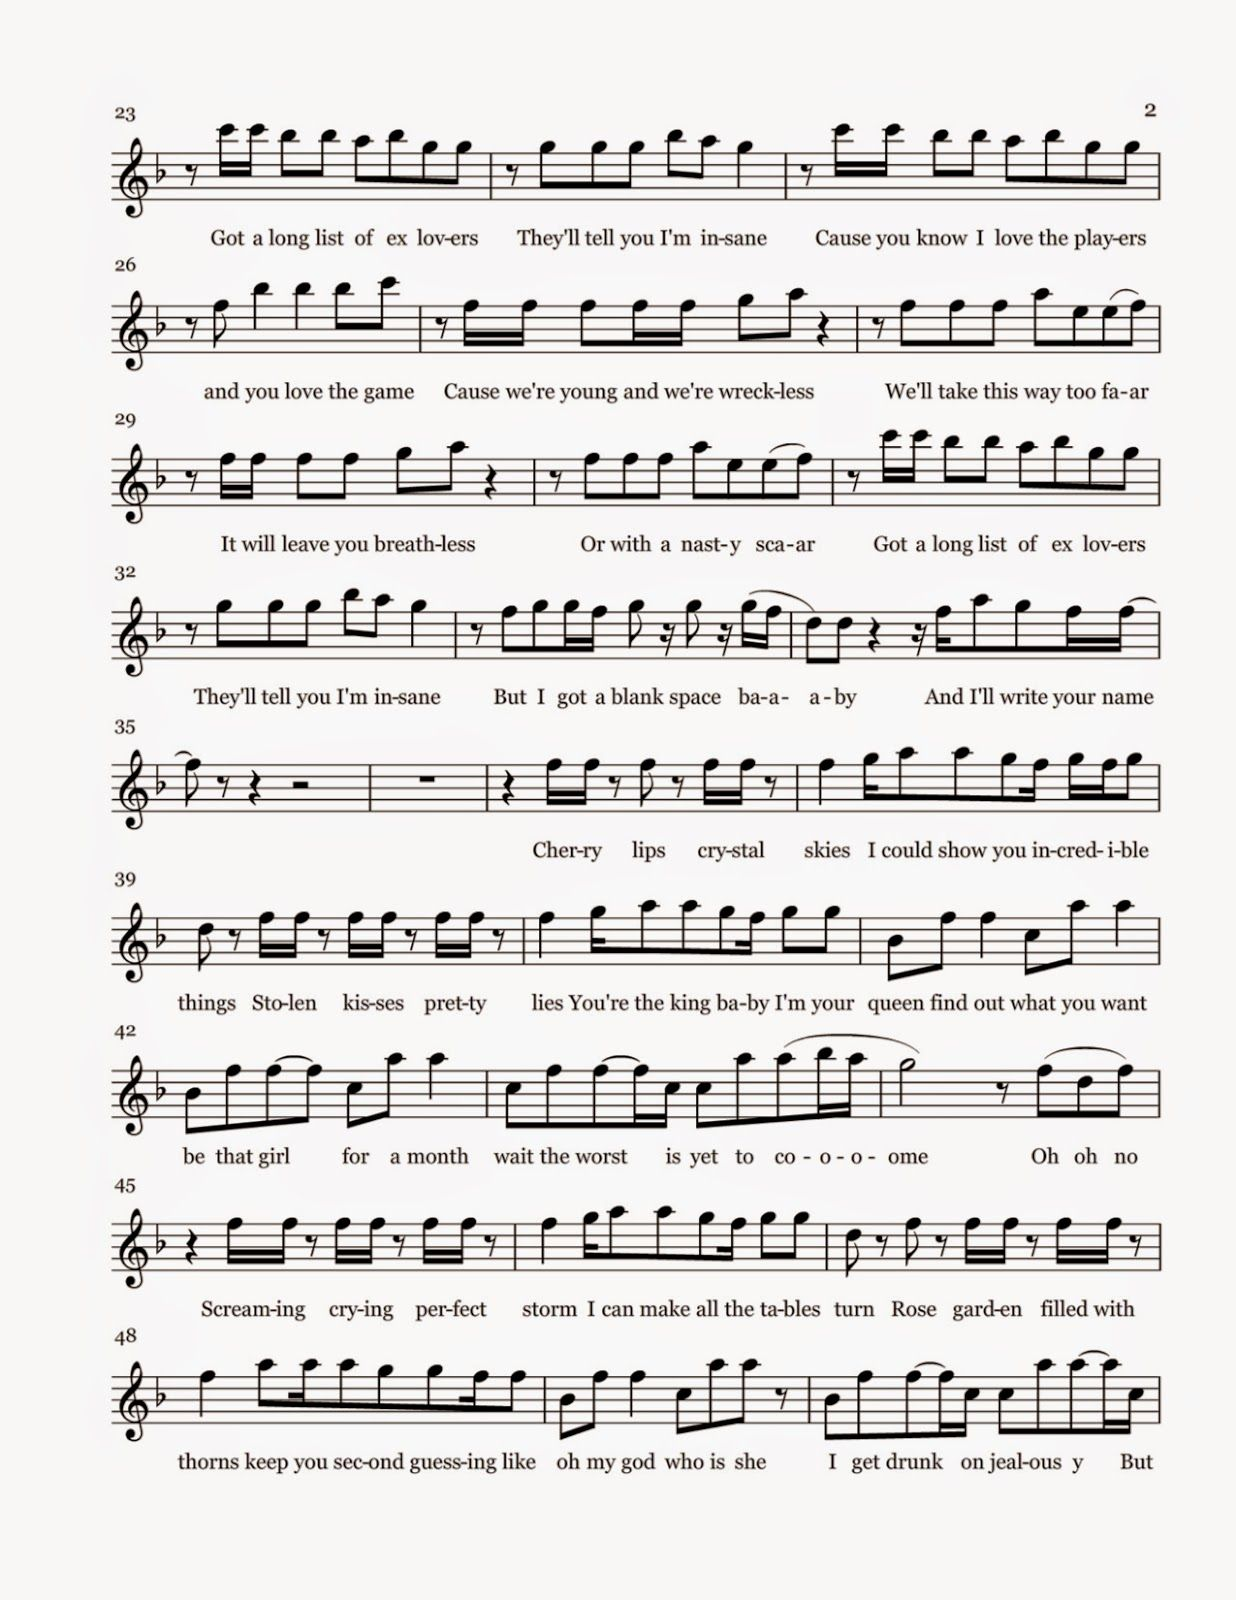 Pin by elias webb on music pinterest blank space and sheet music blank space taylor swift video notes flute sheet music pdf hexwebz Choice Image